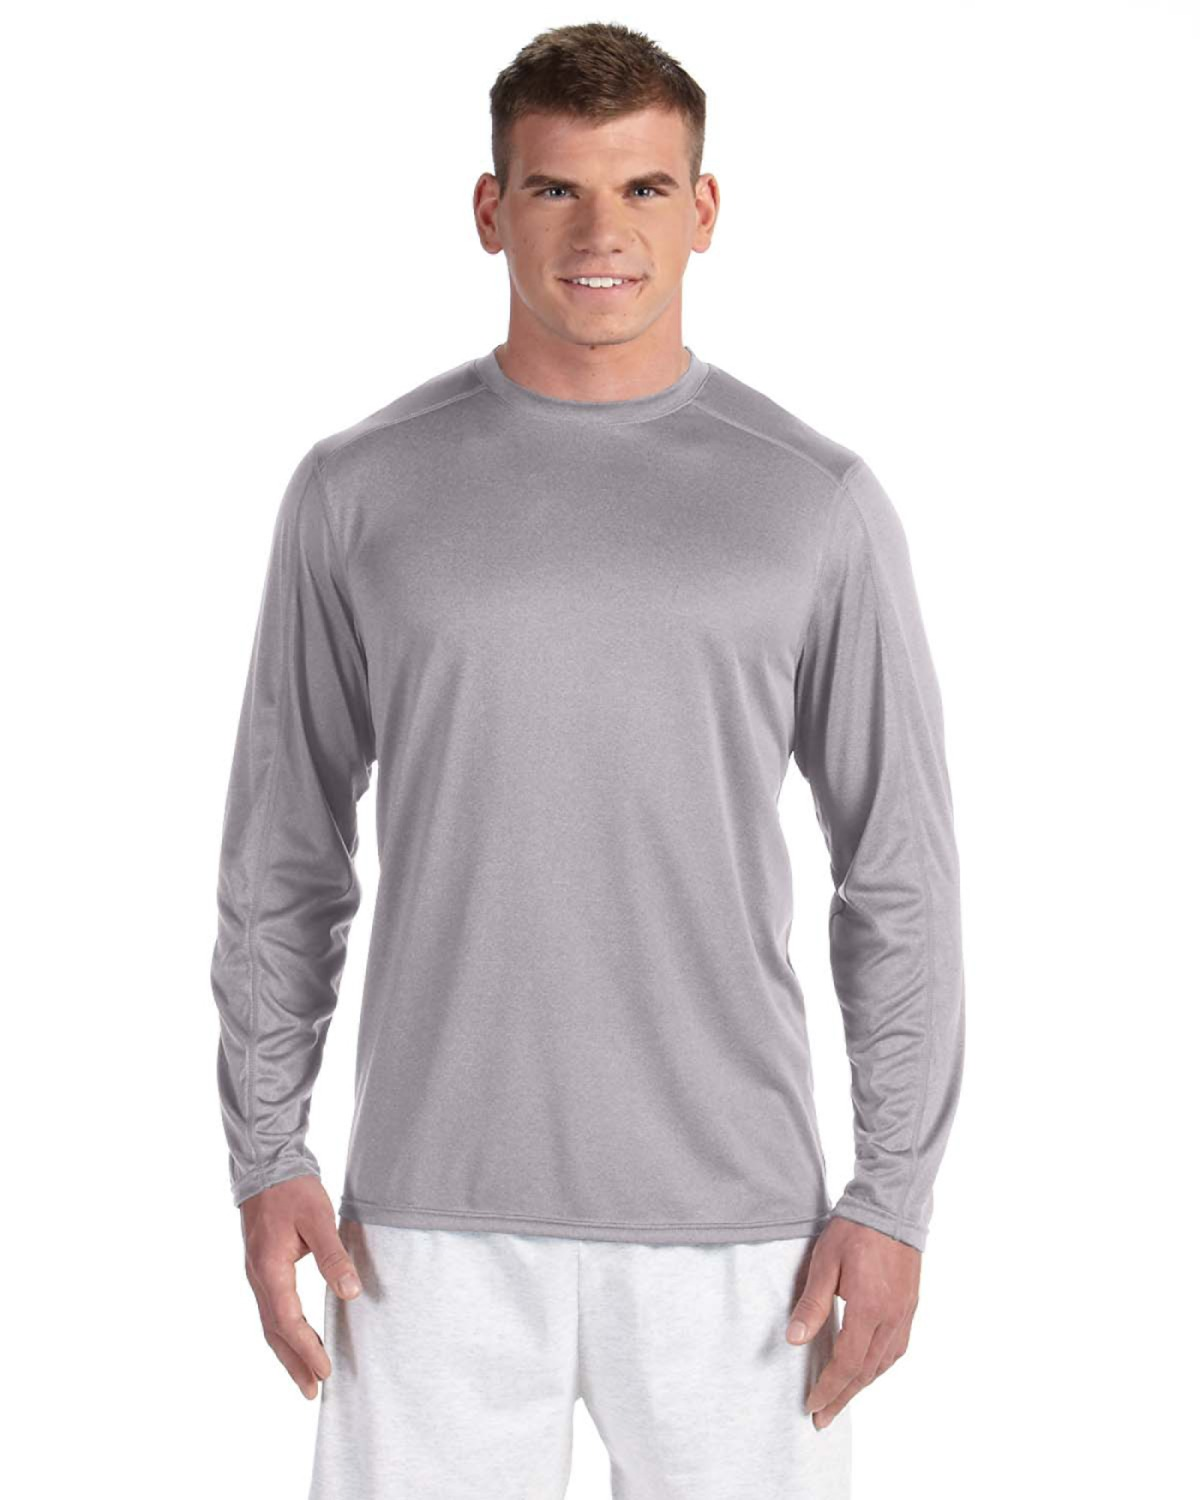 Champion CV26 - Vapor® 4 oz. Long-Sleeve T-Shirt